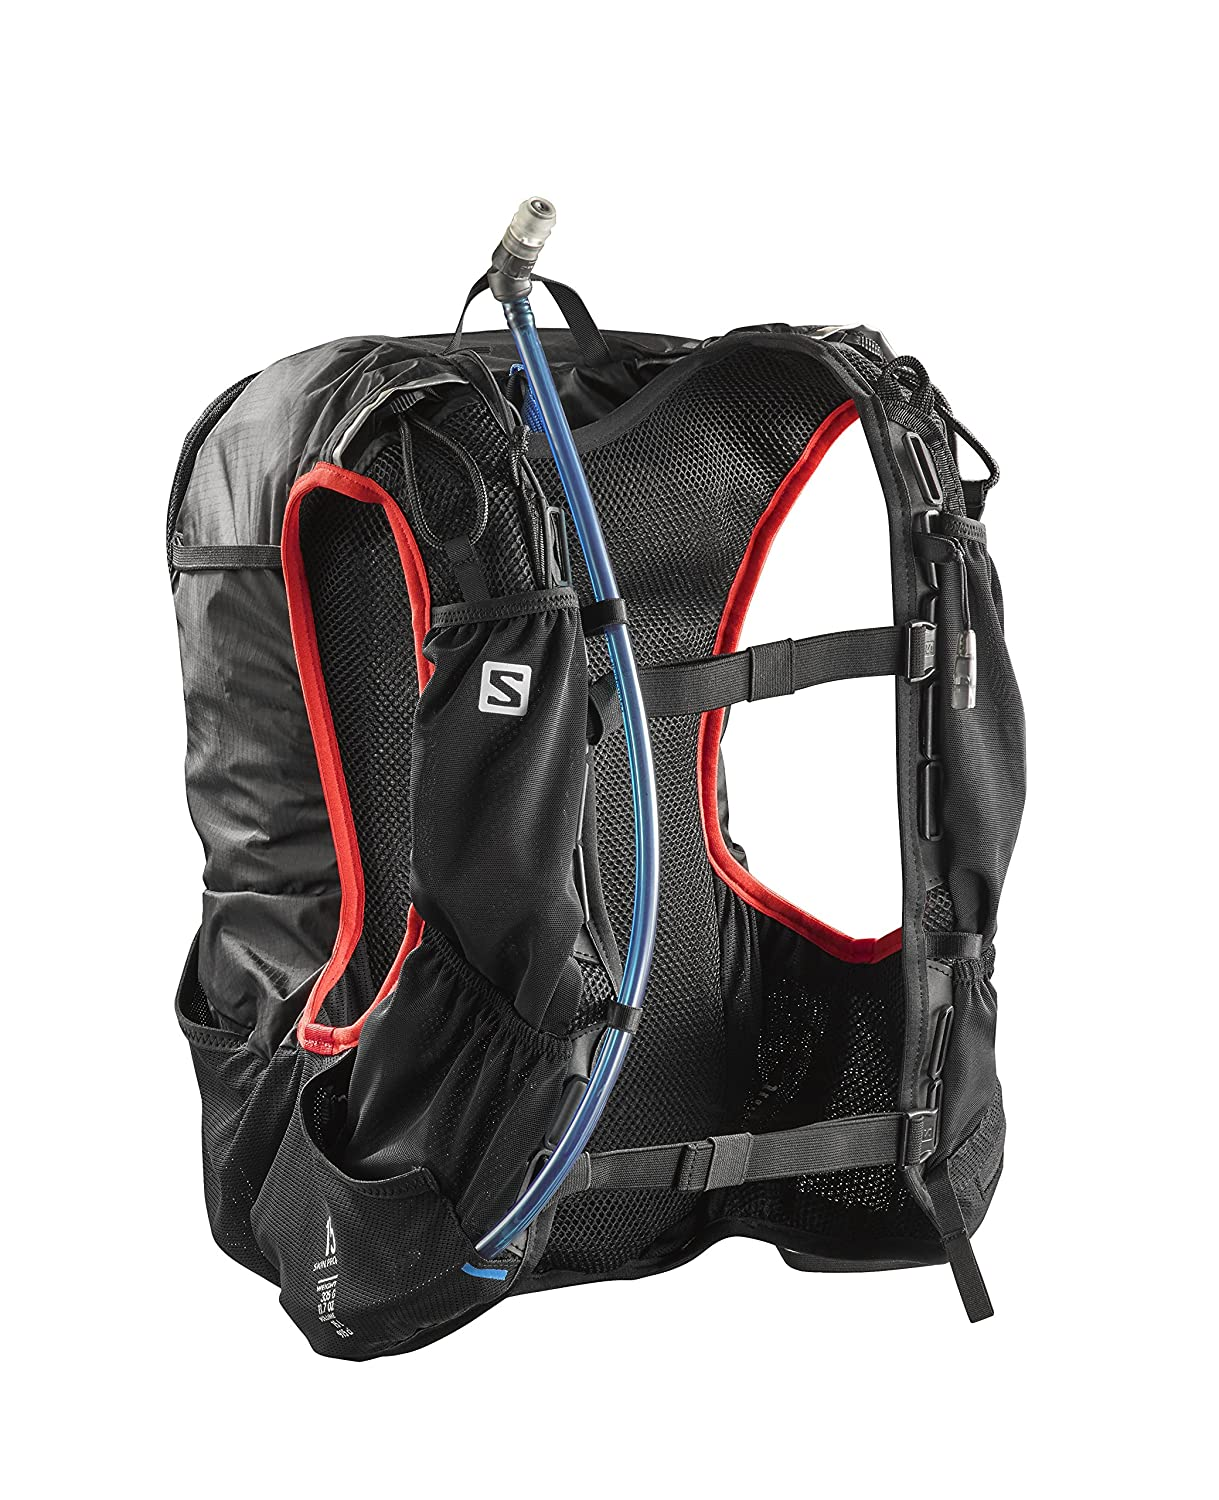 Salomon Skin Pro 15 Set Backpack